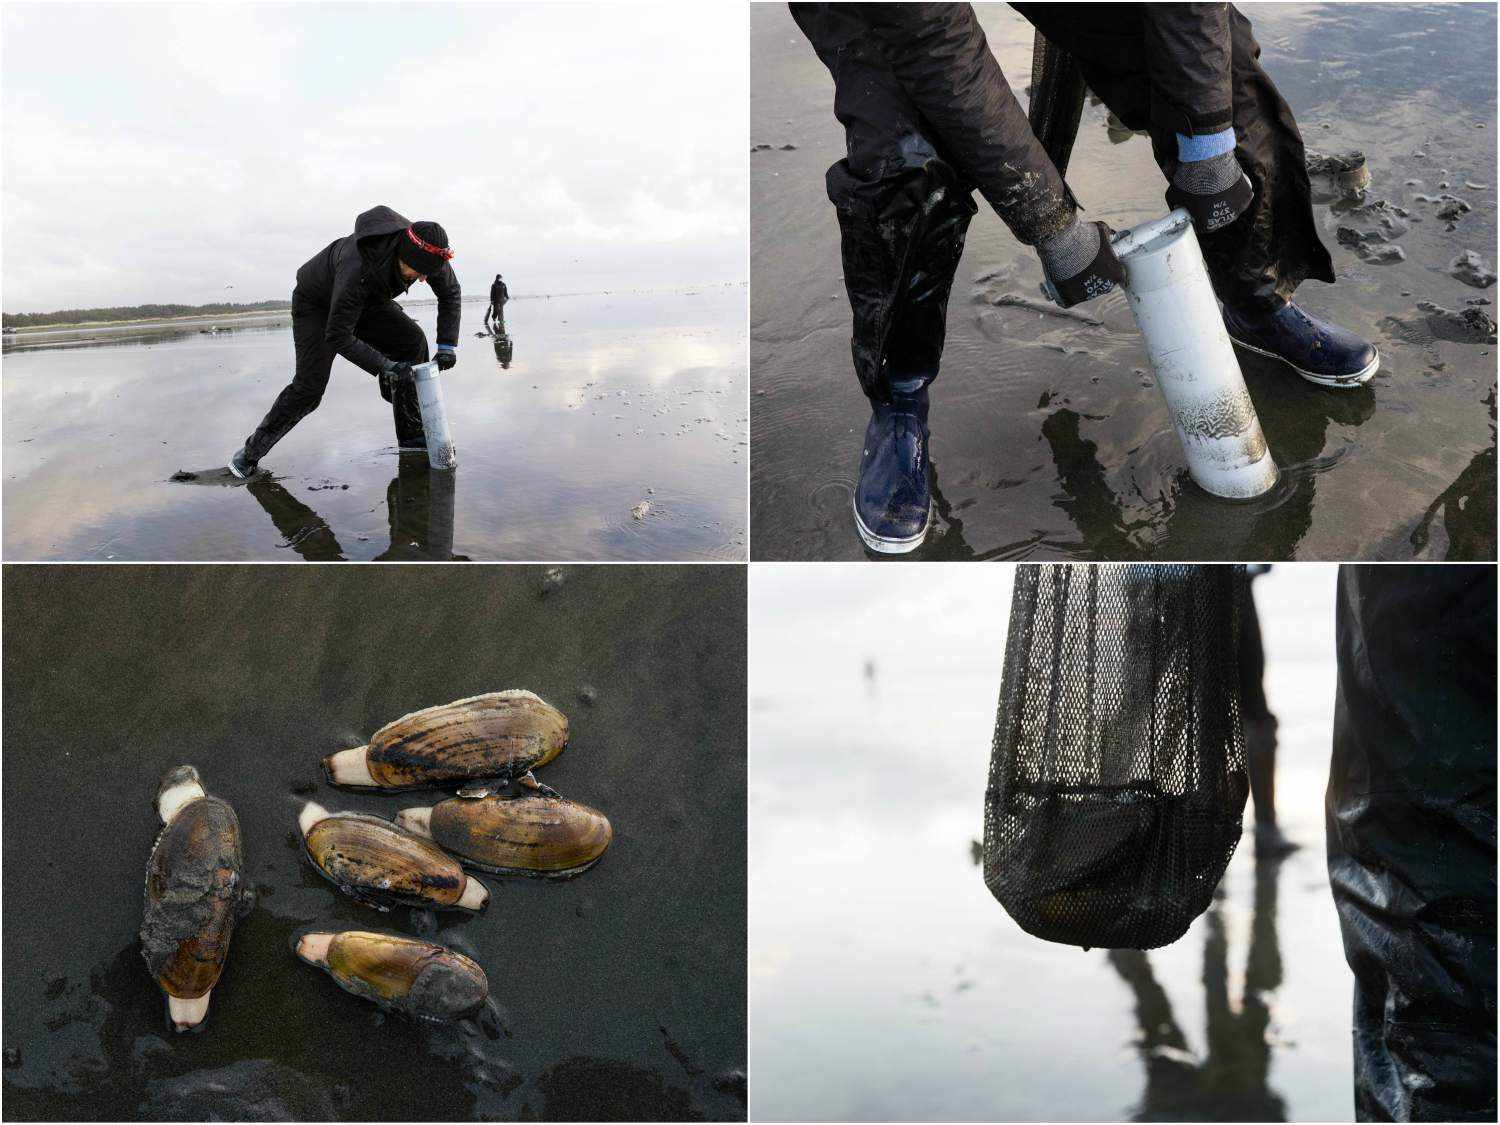 Collage of process of gathering razor clams: a razor clammer digging into the sand with a clam gun, close-up of clam gun in sand, five razor clams resting on sand, mesh bag holding razor clams